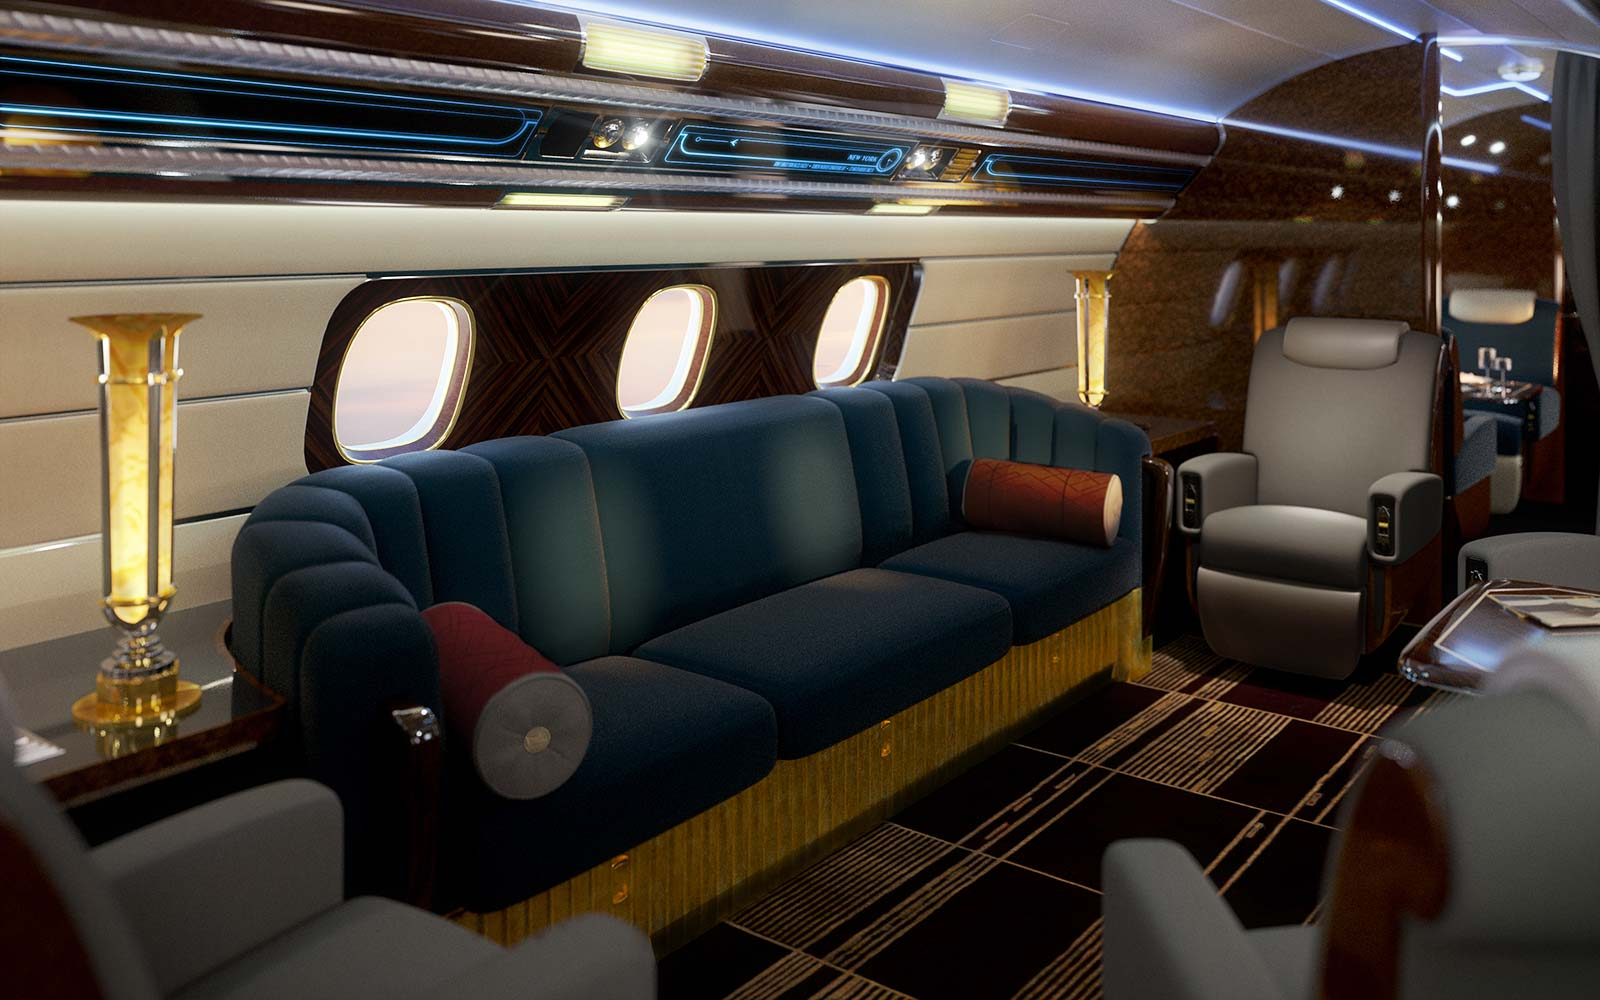 Art Deco Plane Interior Design